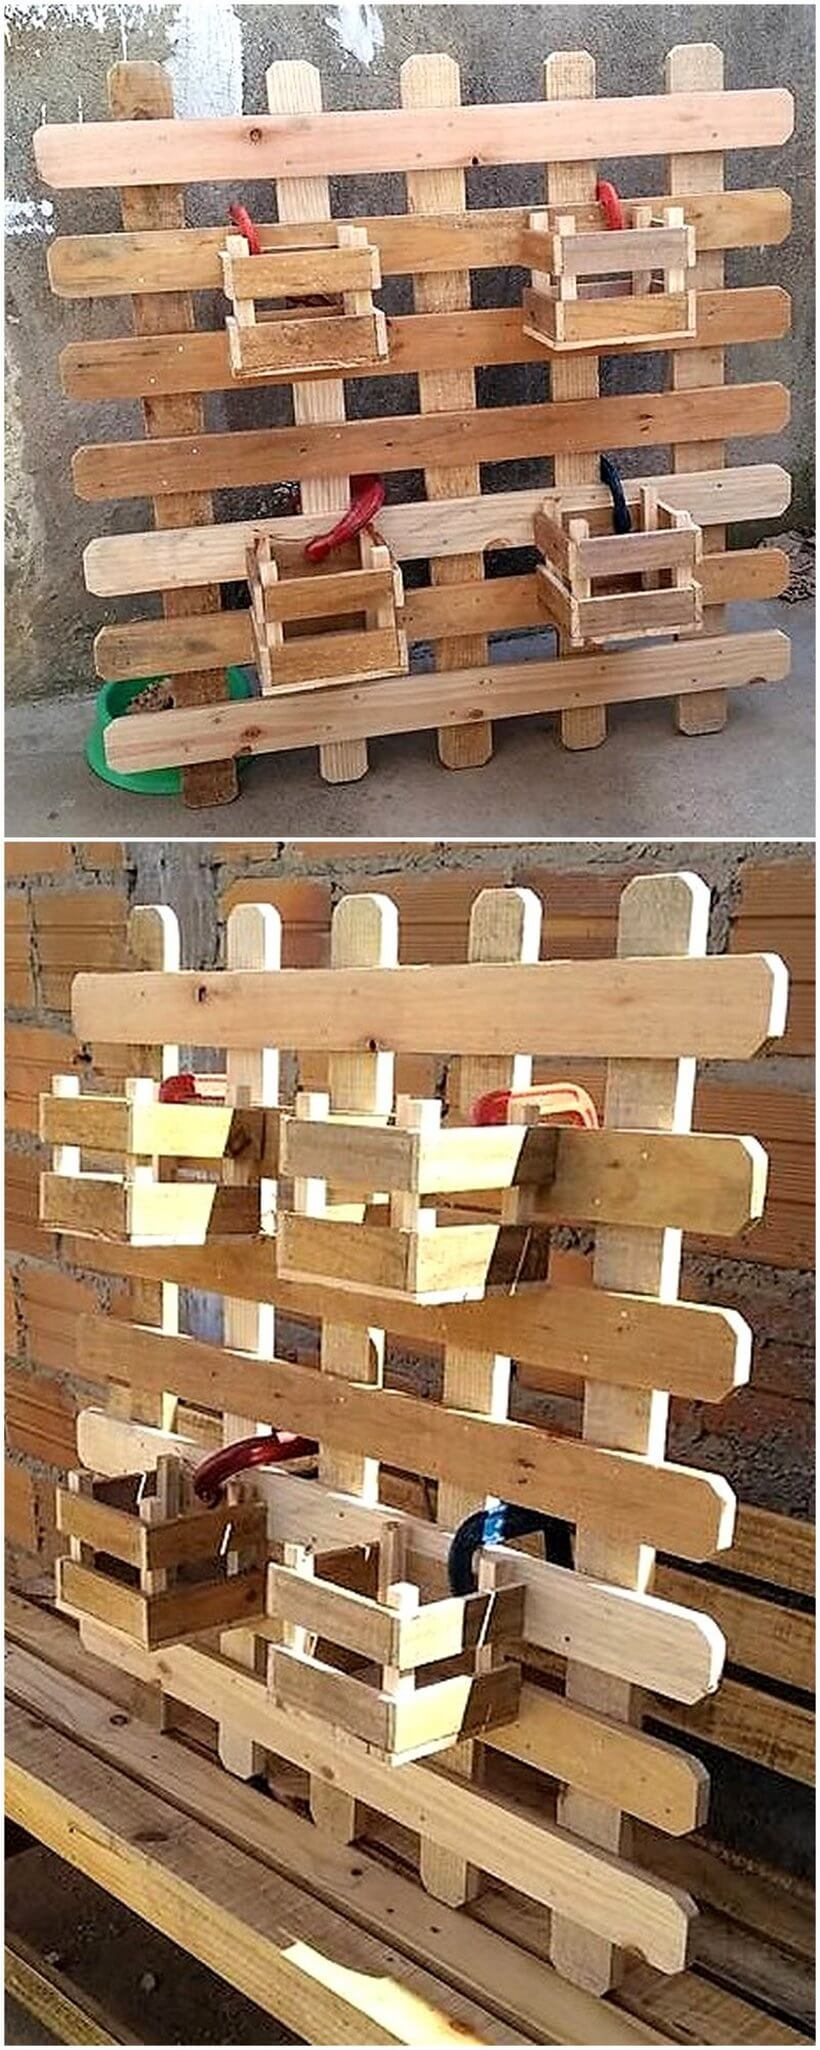 pallet wall planter idea